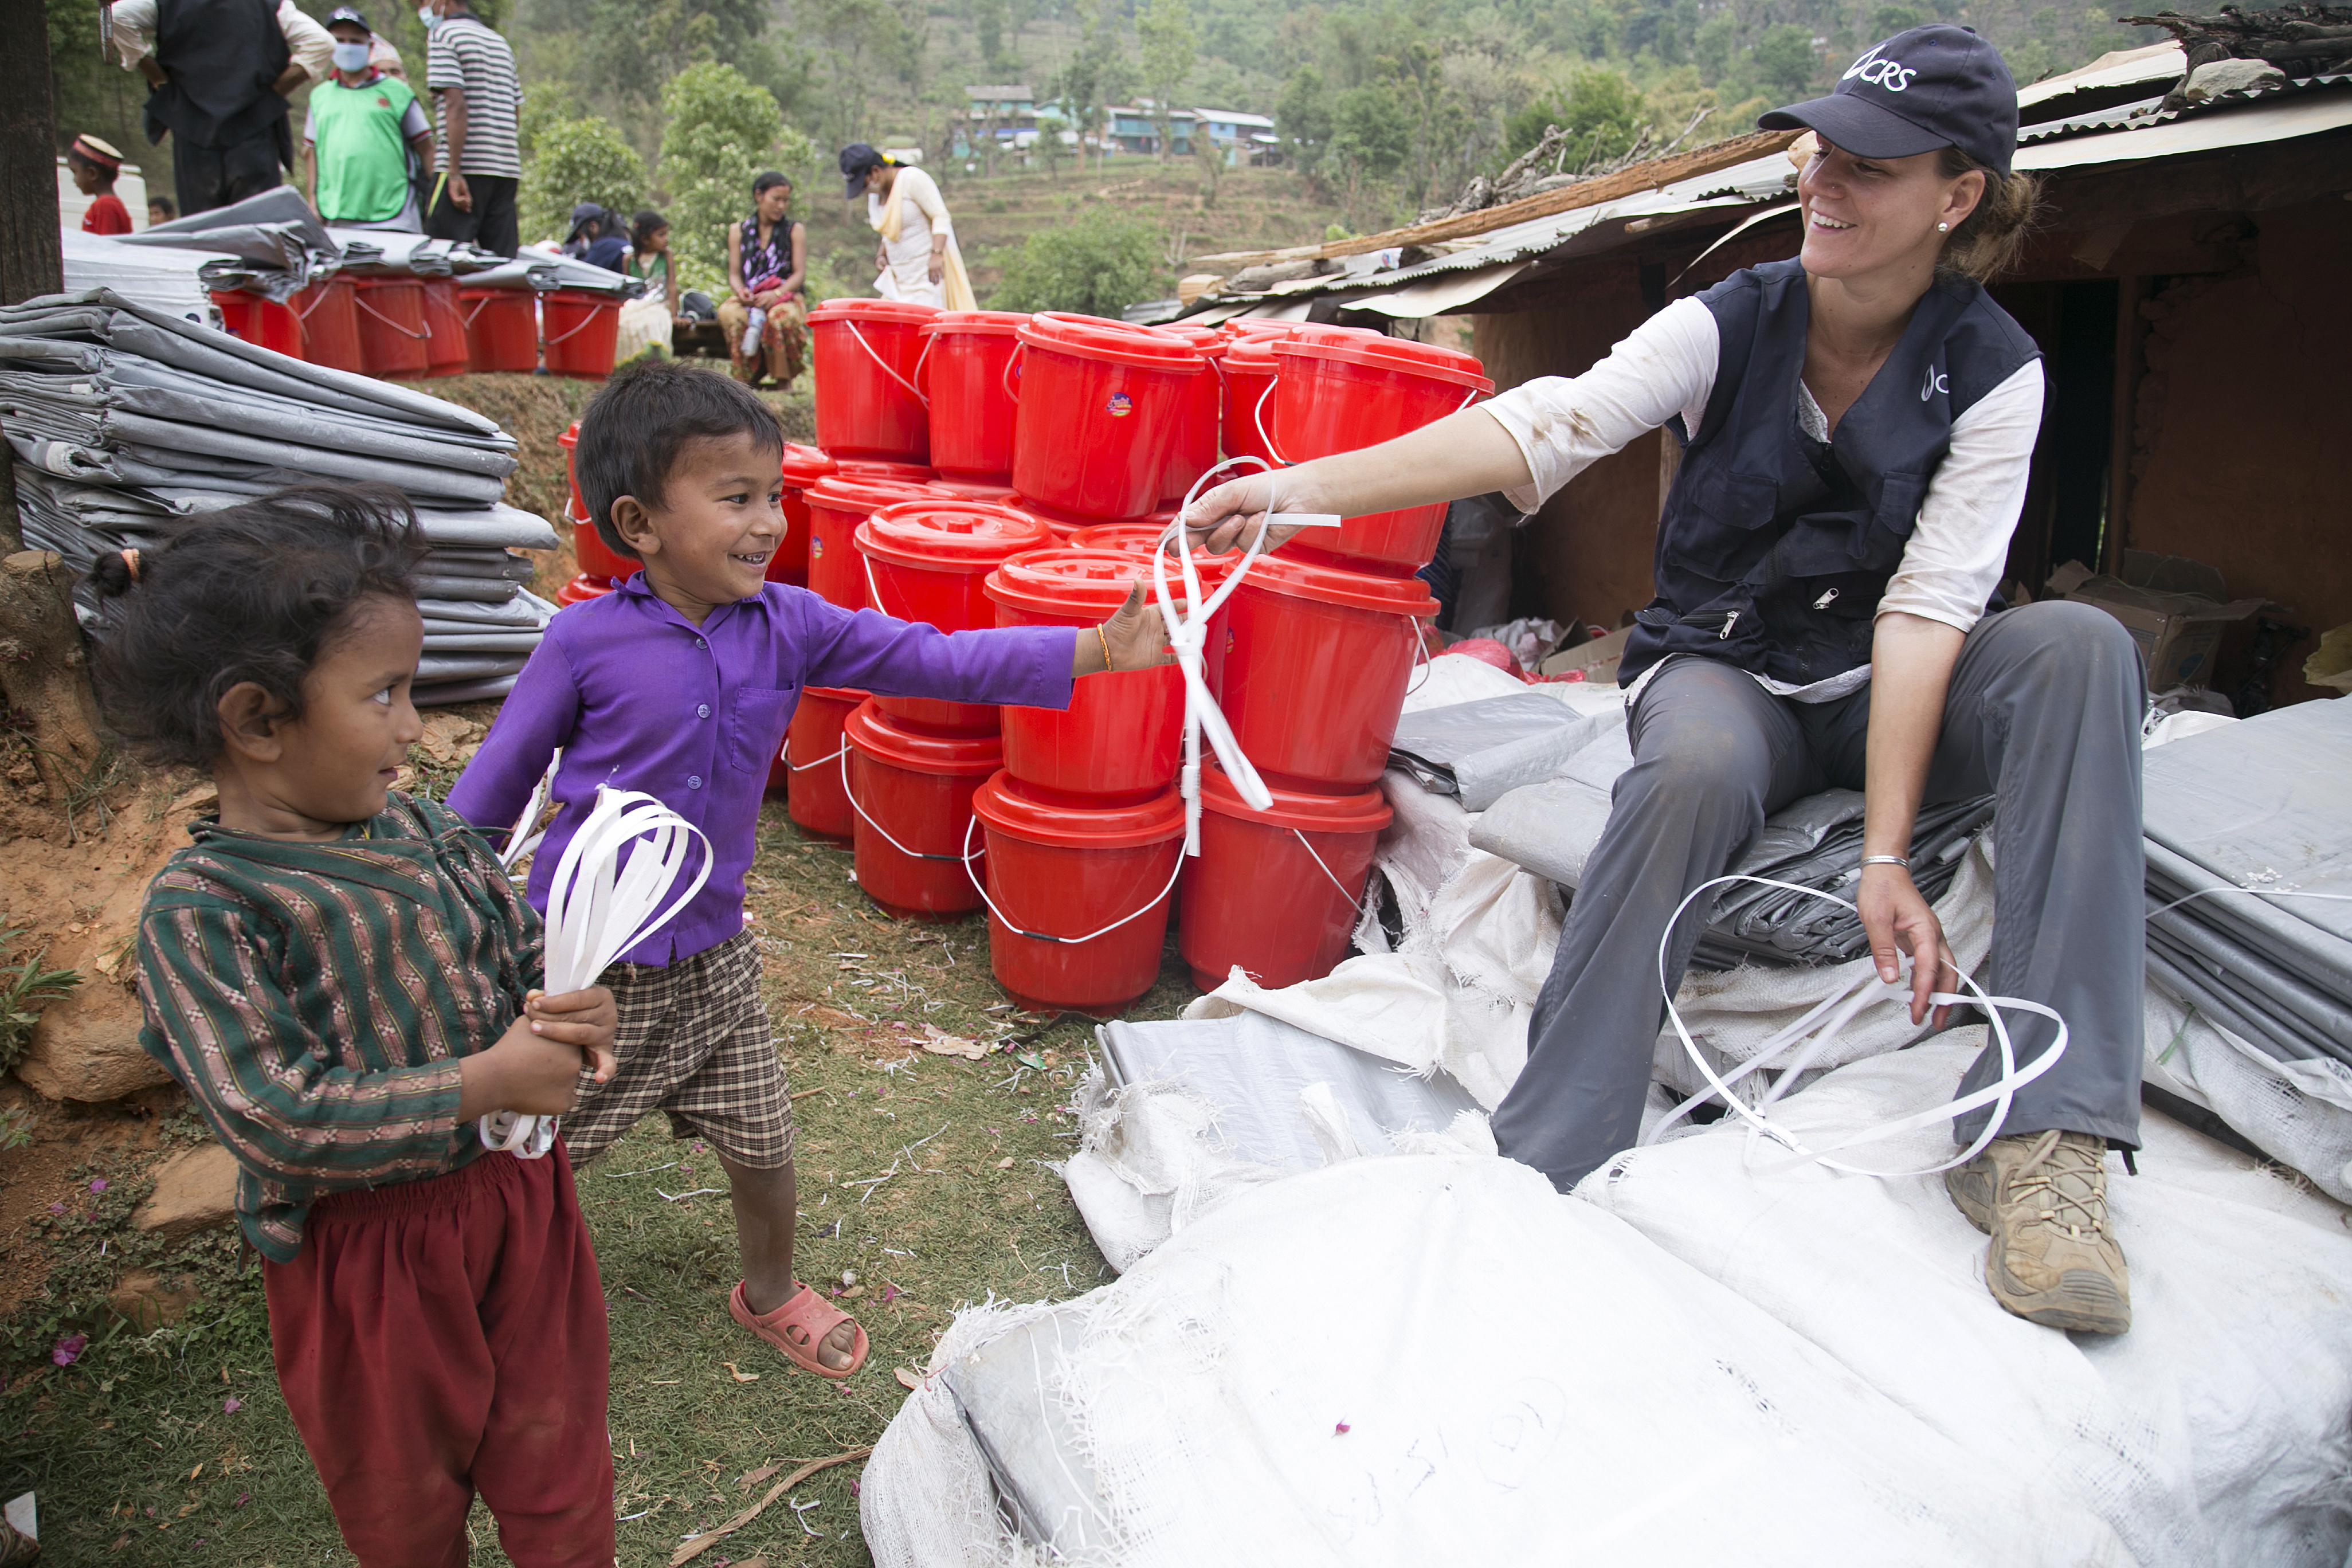 CRS staff member Elizabeth Tromans unpacks supplies for a distribution in Nepal, where we've provided items such as hygiene kits, like those in the background, to 103,000 people. Photo by Jennifer Hardy/CRS